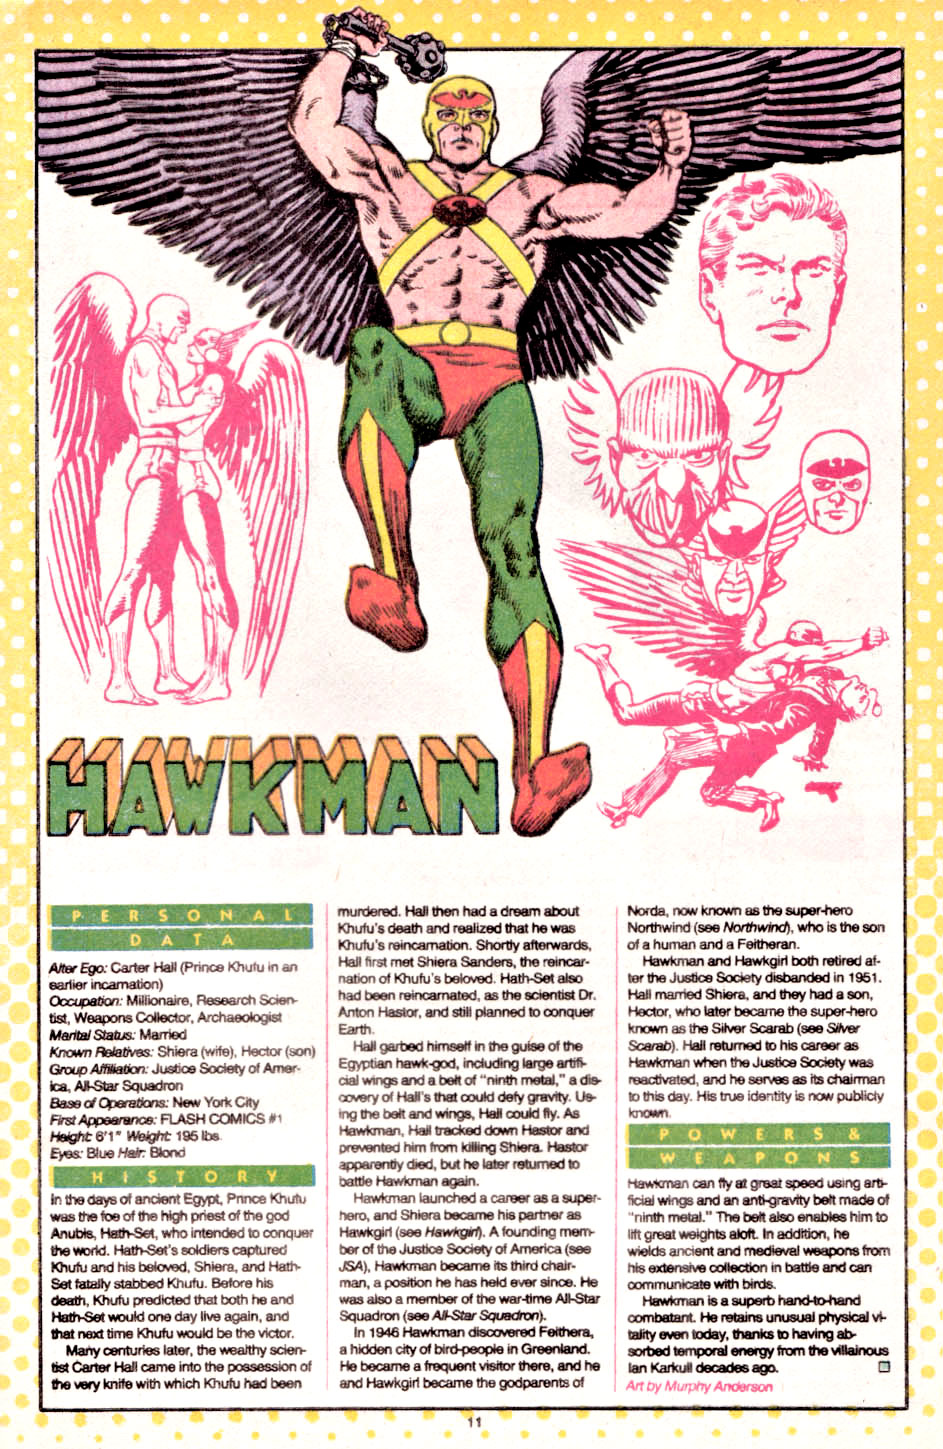 Carter Hall Hawkman Who's Who entry by Murphy Anderson